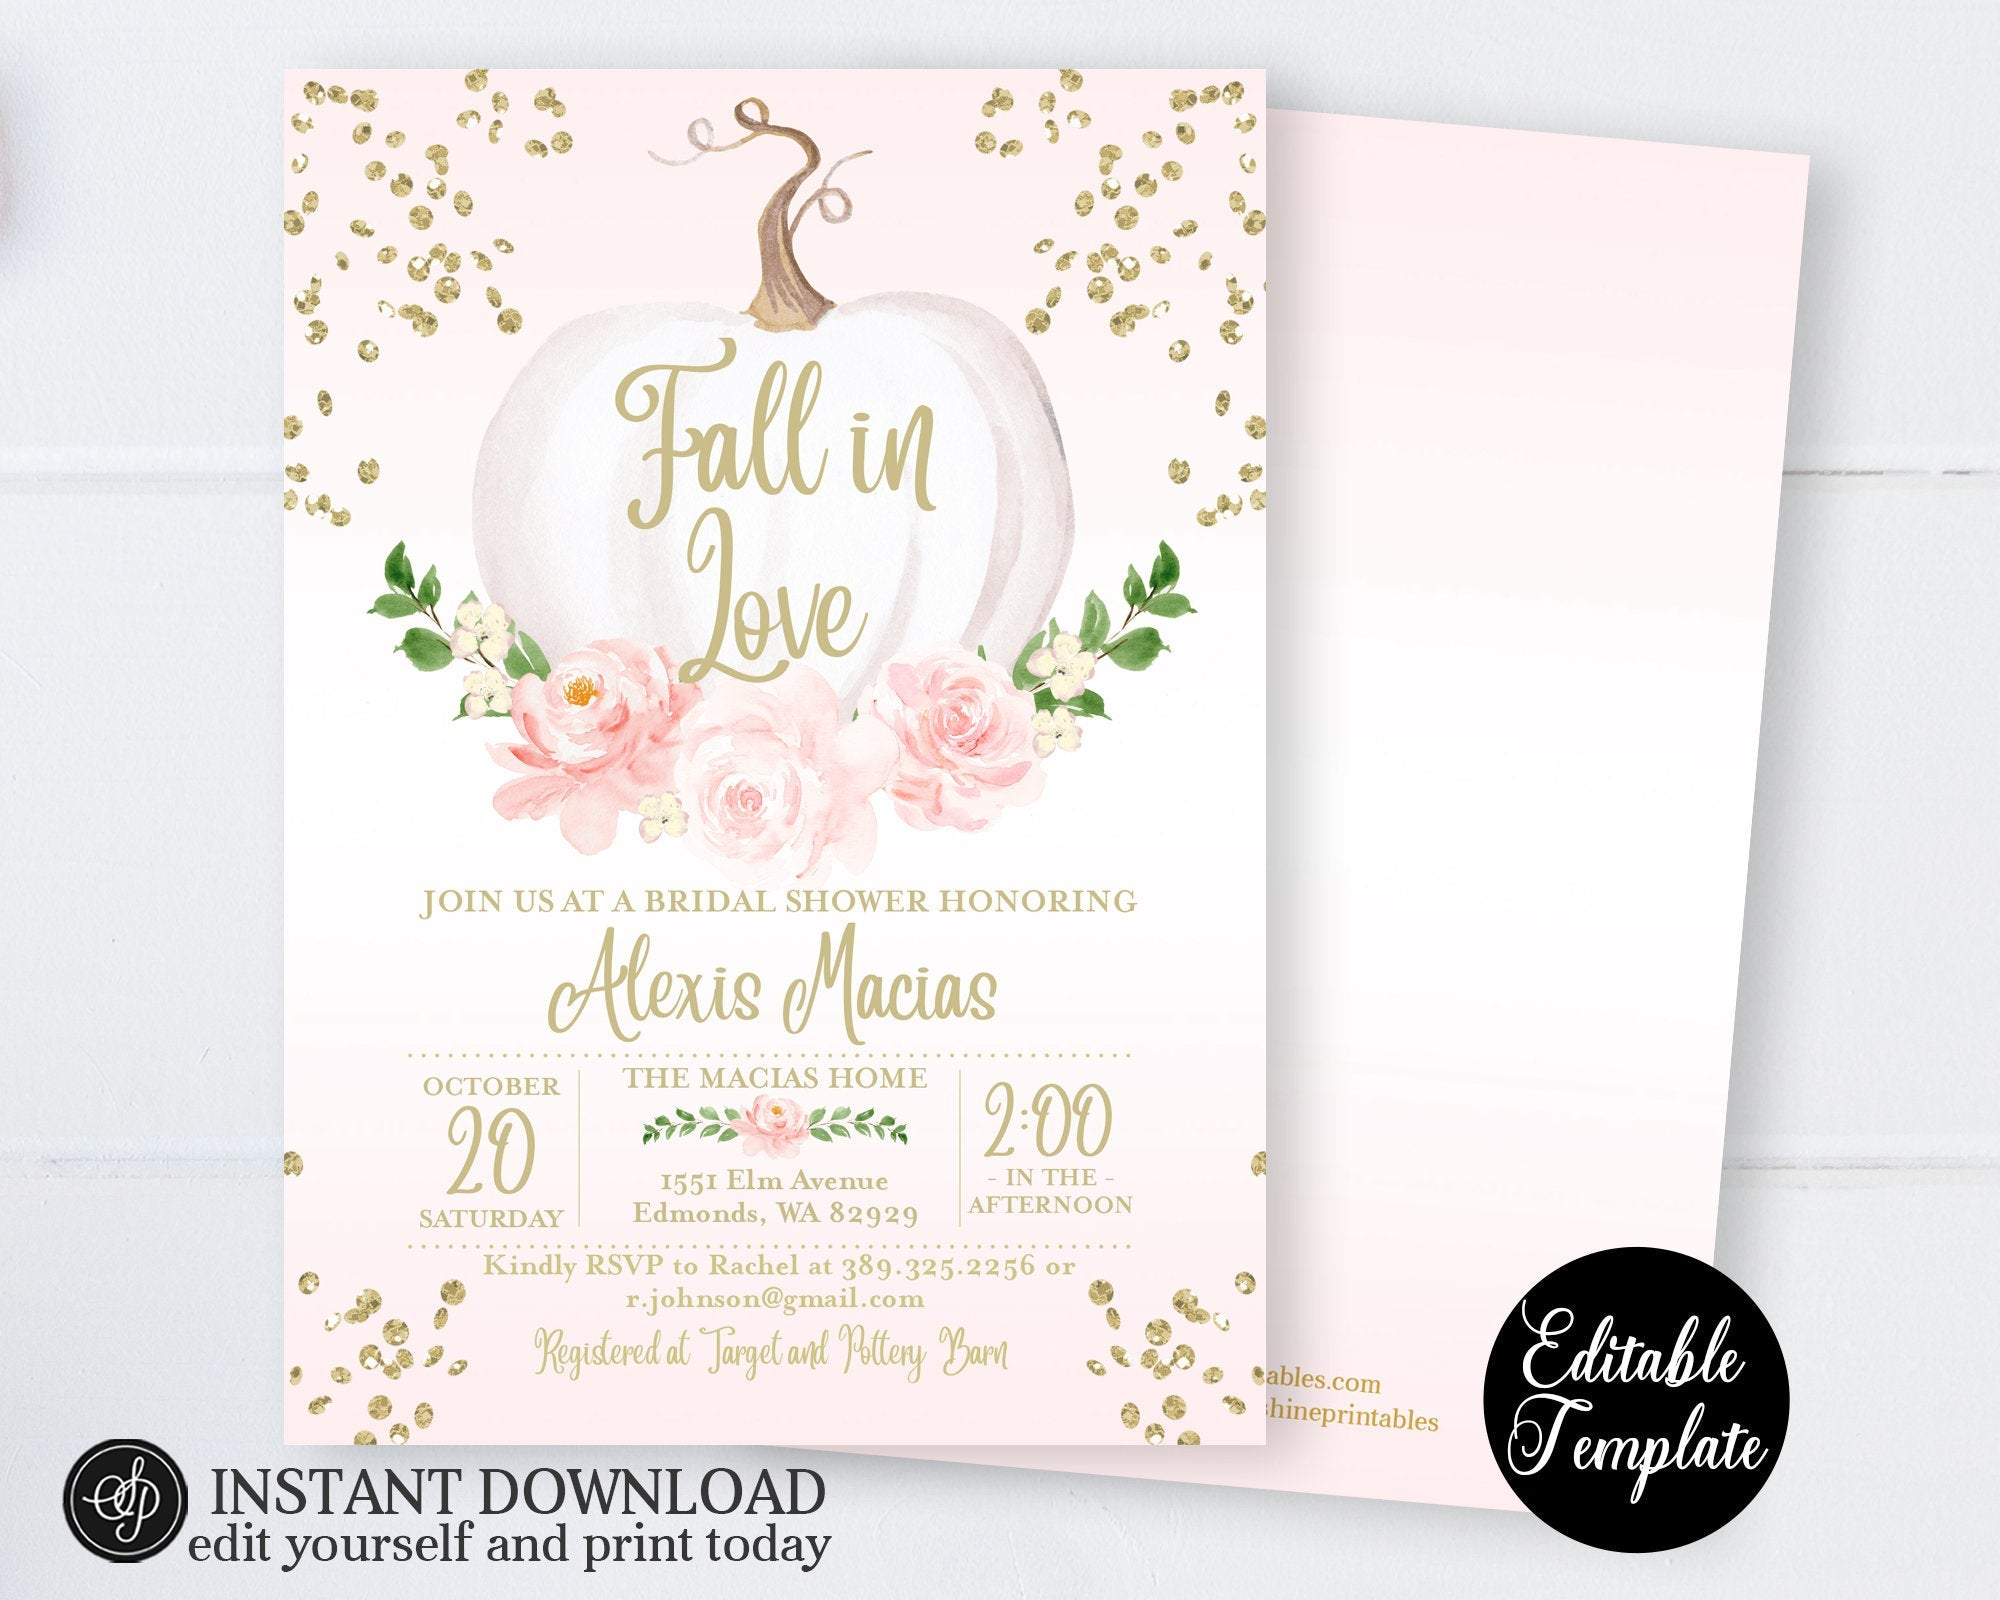 picture regarding Bridal Shower Invitations Printable identified as Drop inside of Enjoy Bridal Shower Invitation, Crimson Floral White Pumpkin Bridal Shower Invite, Printable Invitation, EDITABLE, Templett, SP0056B